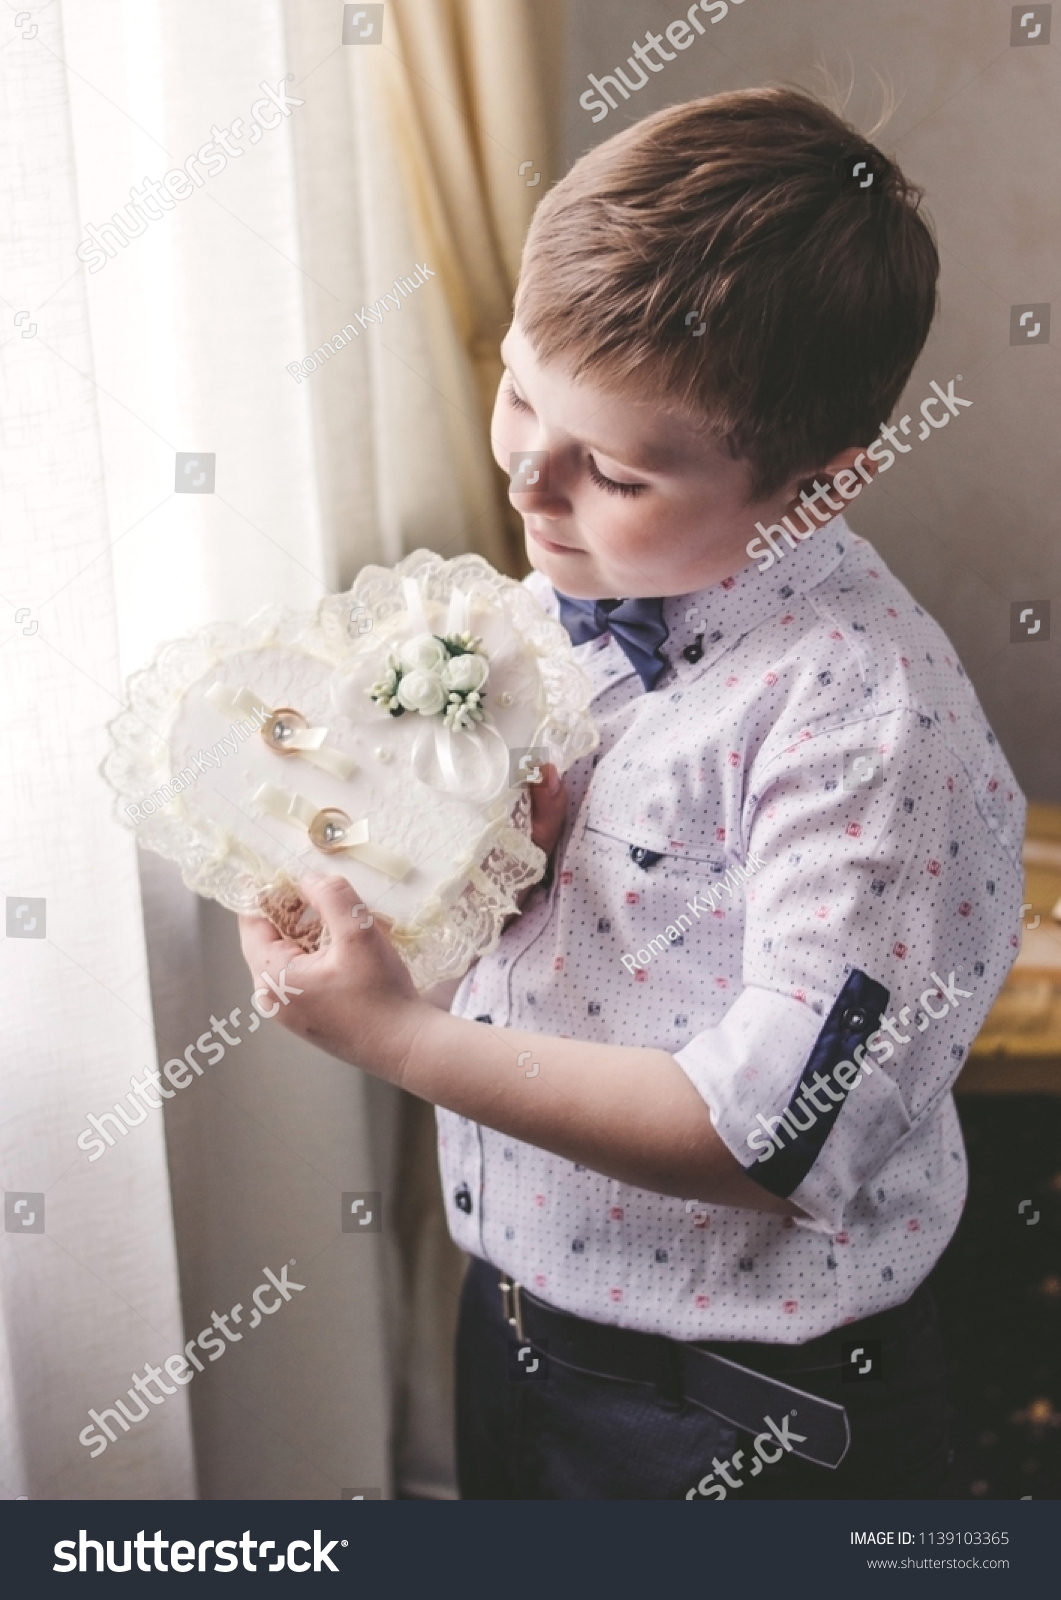 A Little Boy Holds Wedding Rings For The Newlyweds Child And Of: Wedding Band Little Boy At Reisefeber.org